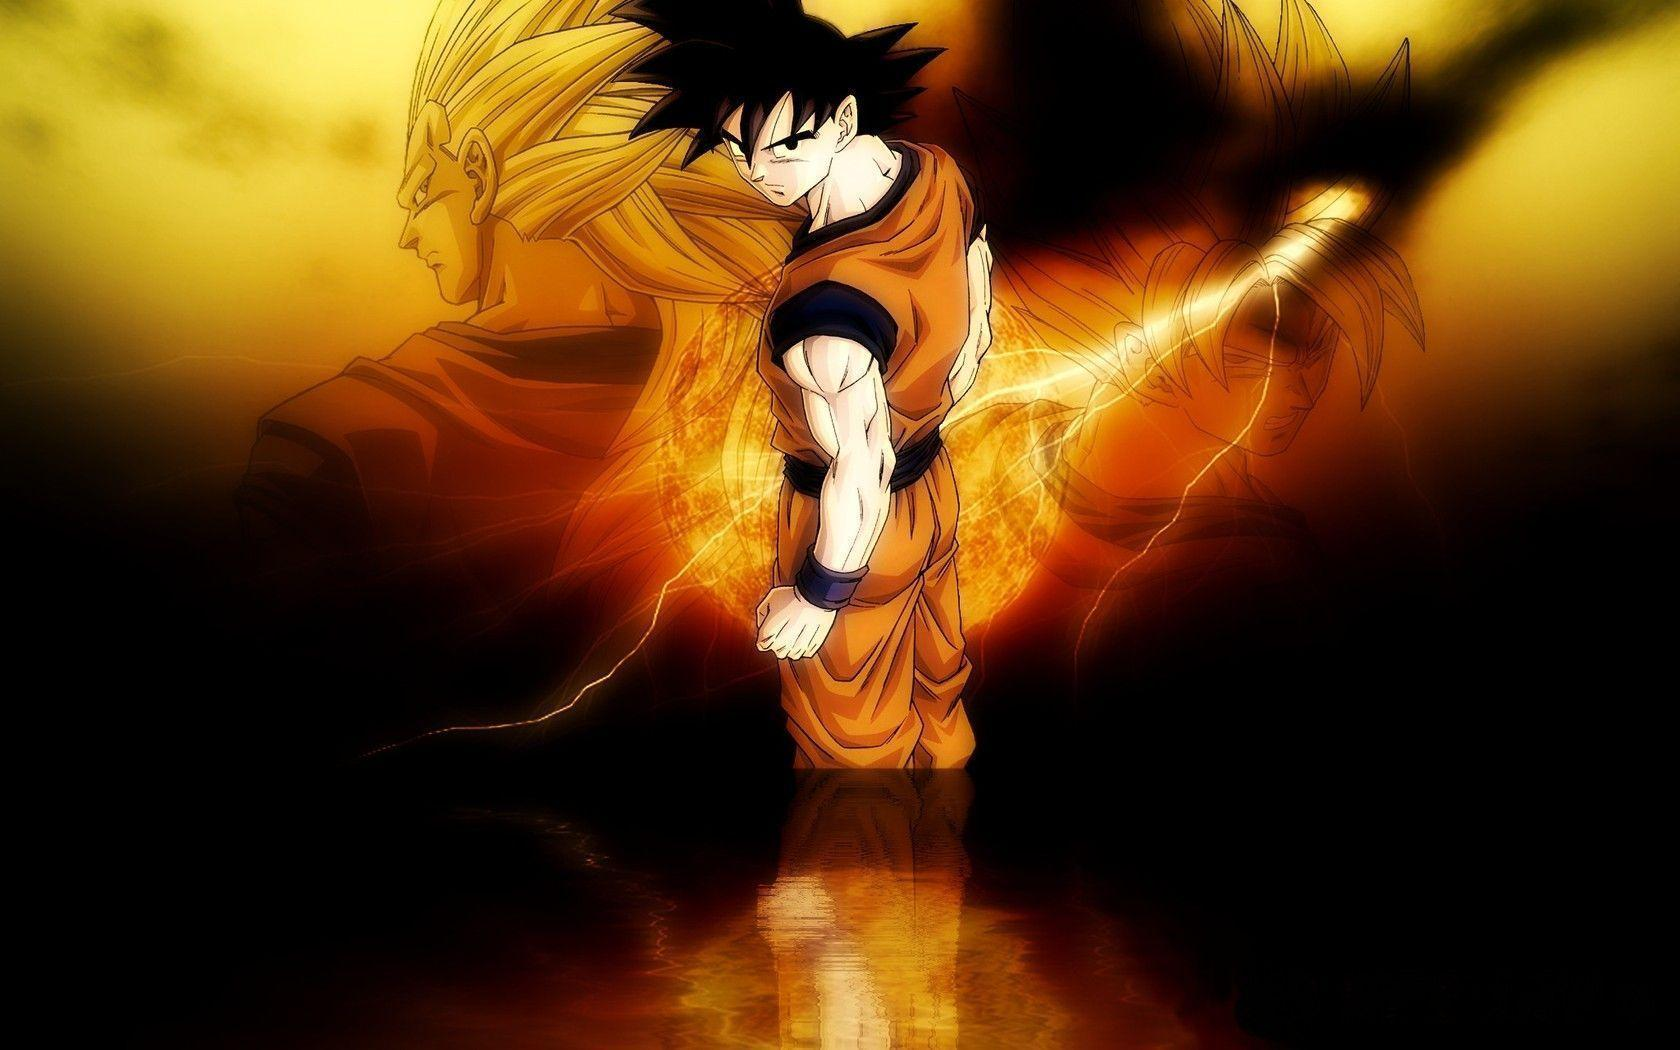 goku wallpaper hd